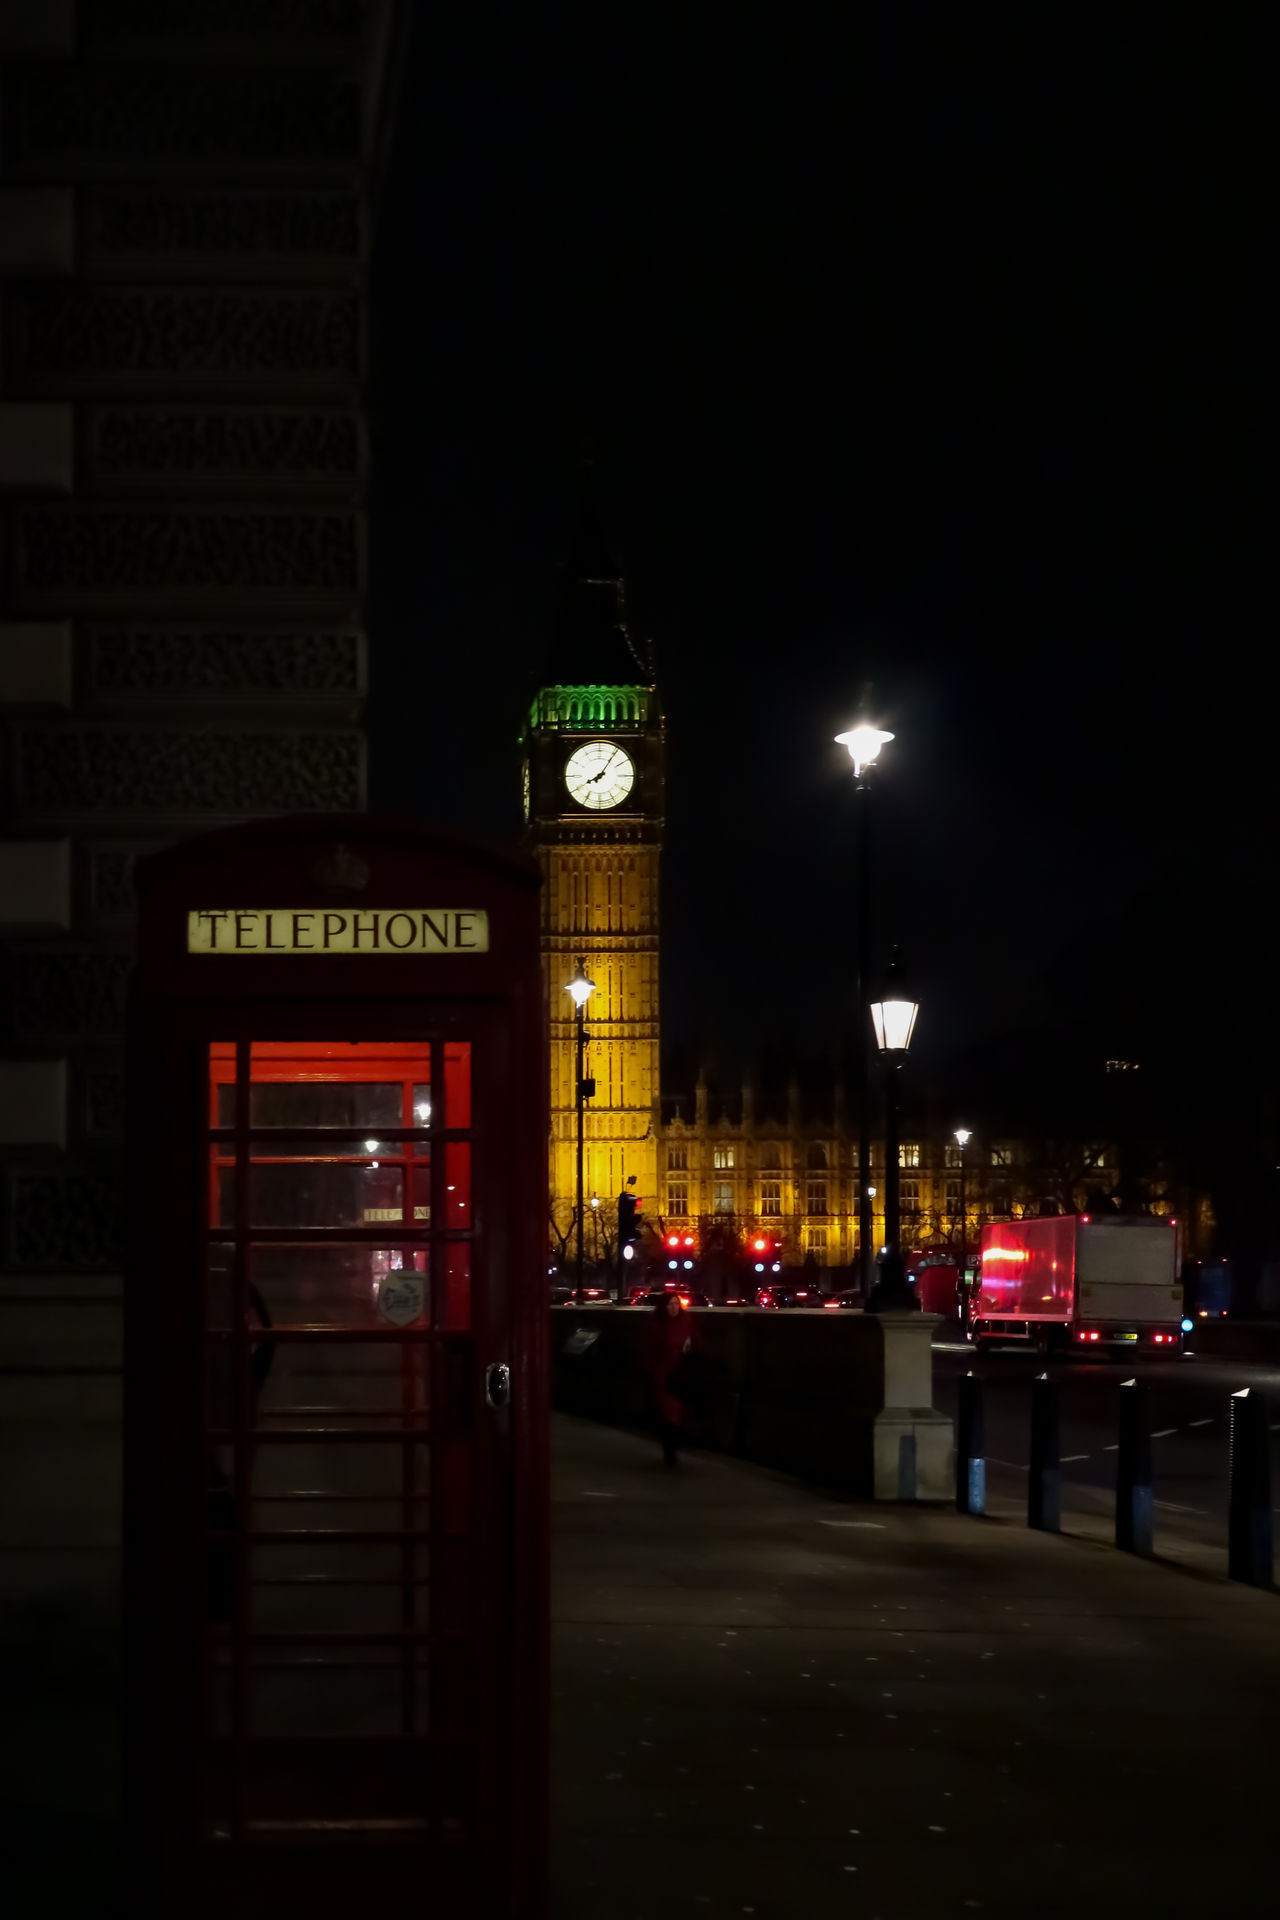 Architecture Big Ben Building Exterior Built Structure City City Gate City Life Clock Clock Tower Communication Cultures Illuminated London Night No People Outdoors Phone Box Red Street Telephone Telephone Booth Tour Traffic View Westminster